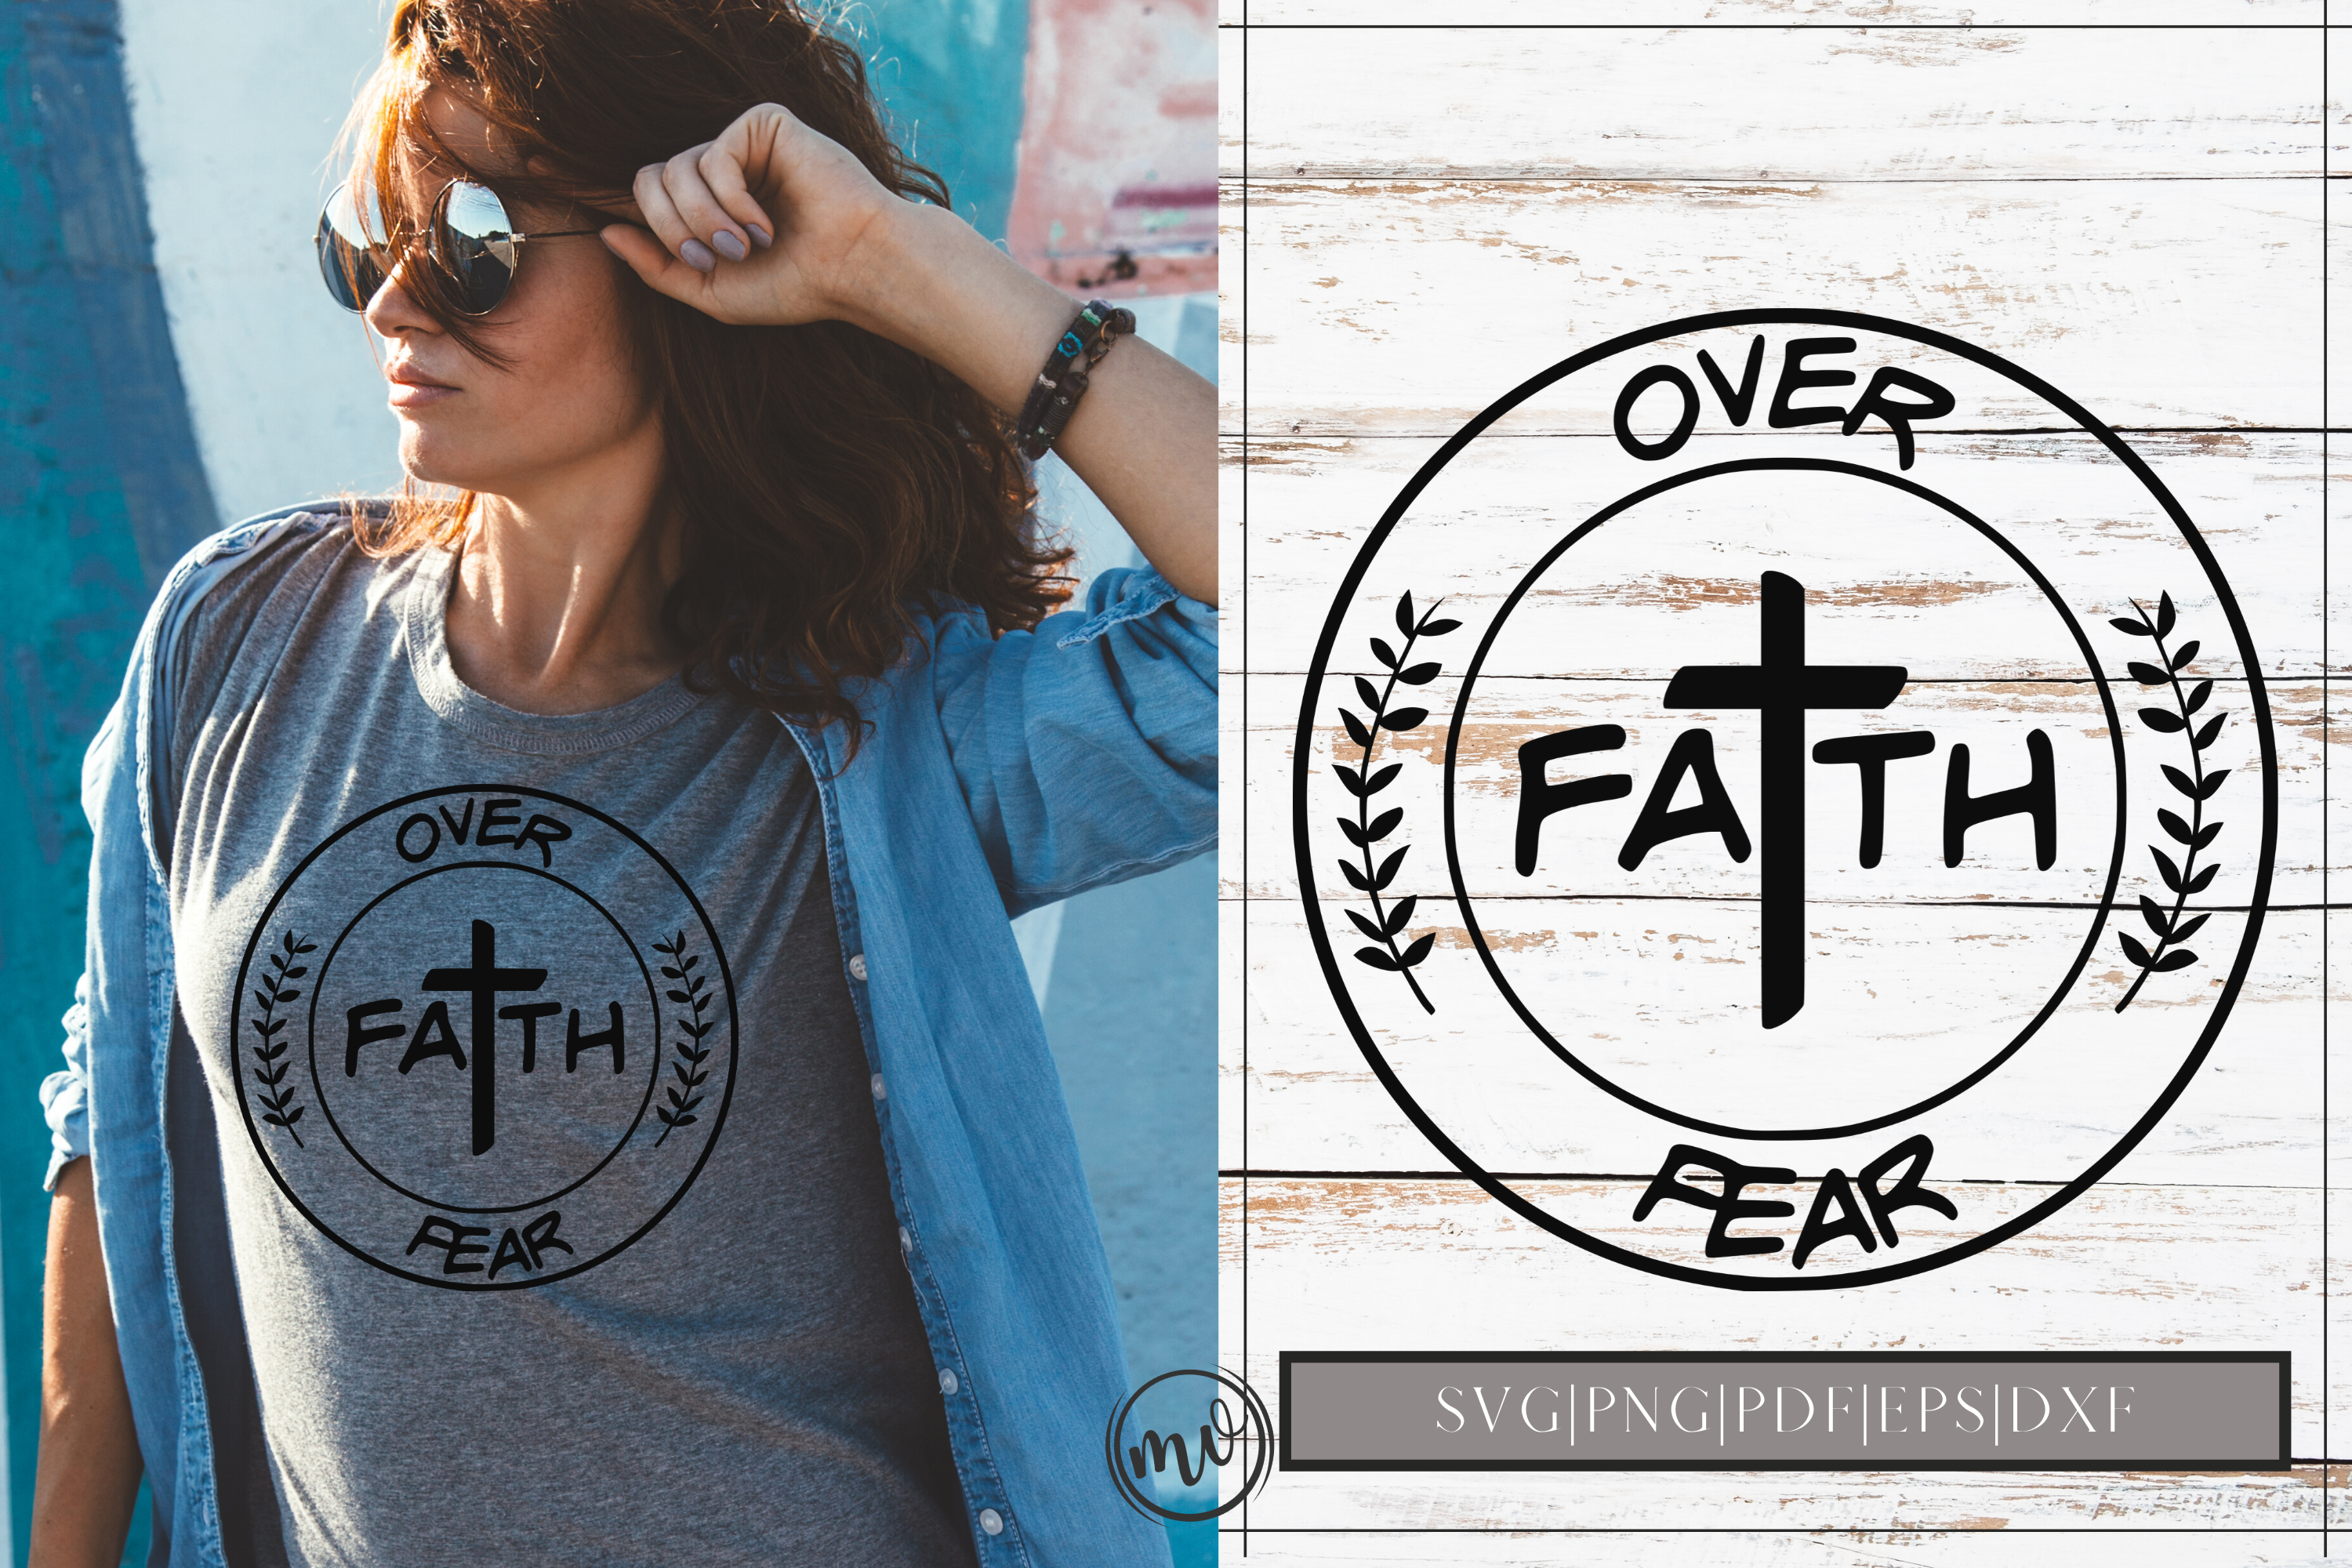 Download Free Faith Over Fear Svg Design Cut File Graphic By Mockup Venue for Cricut Explore, Silhouette and other cutting machines.